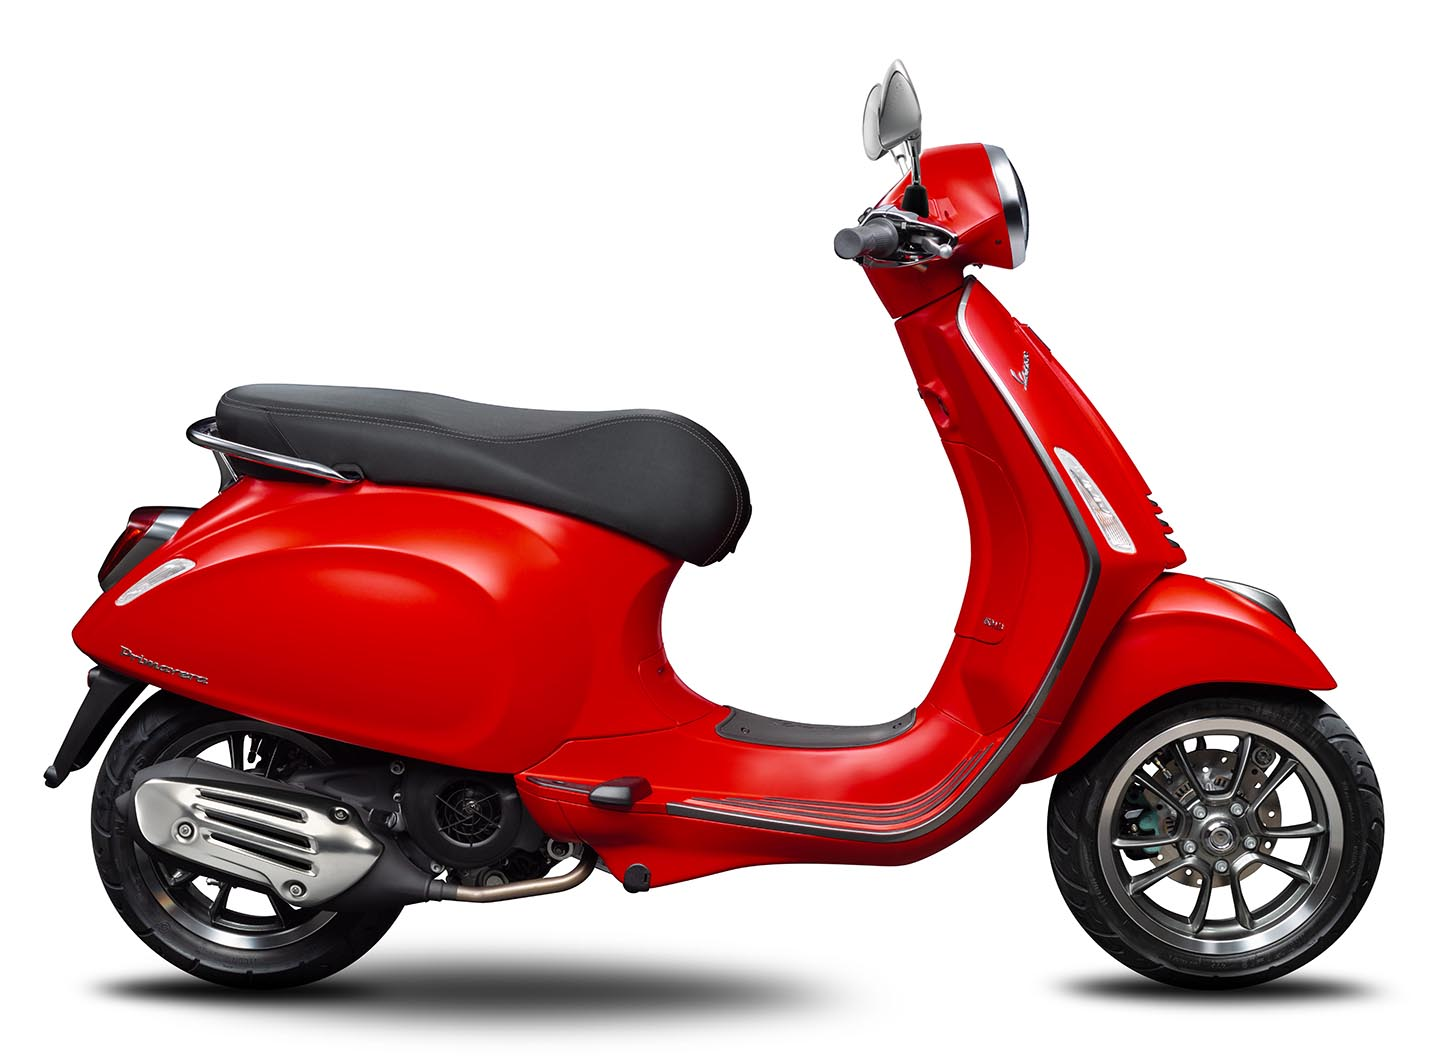 vespa-capture-one-catalog44859-1.jpg